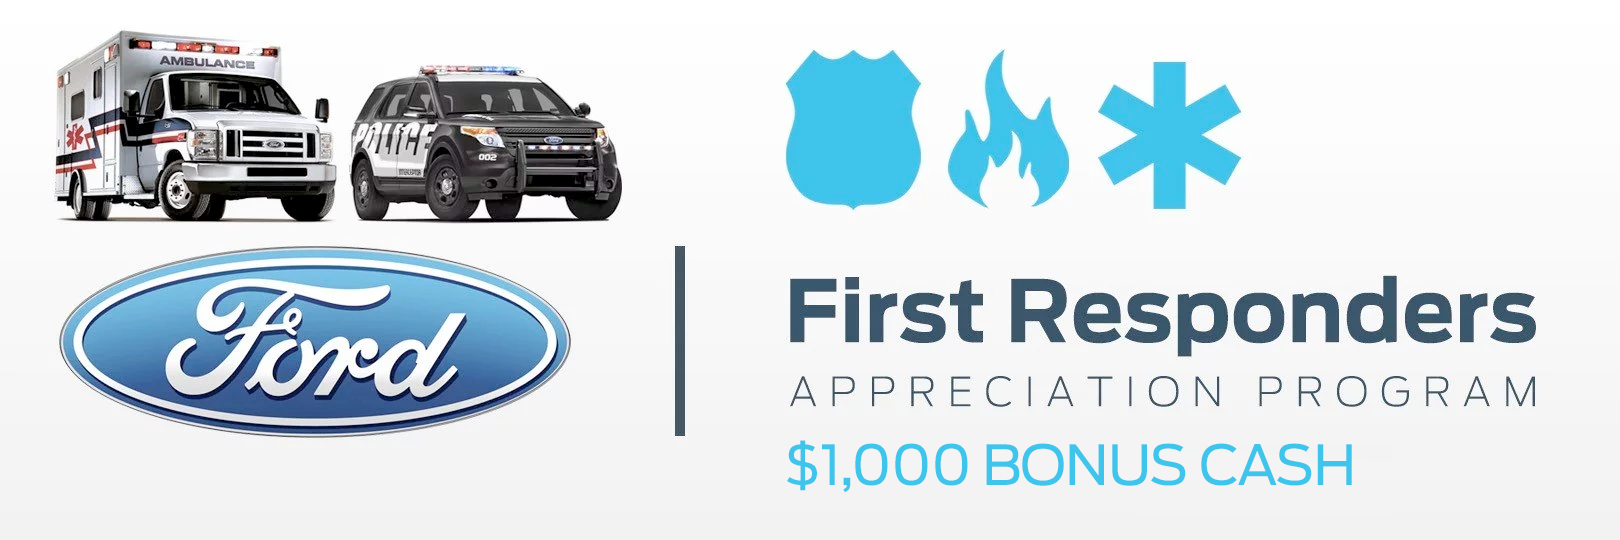 First Responders Appreciation Program Greenway Ford